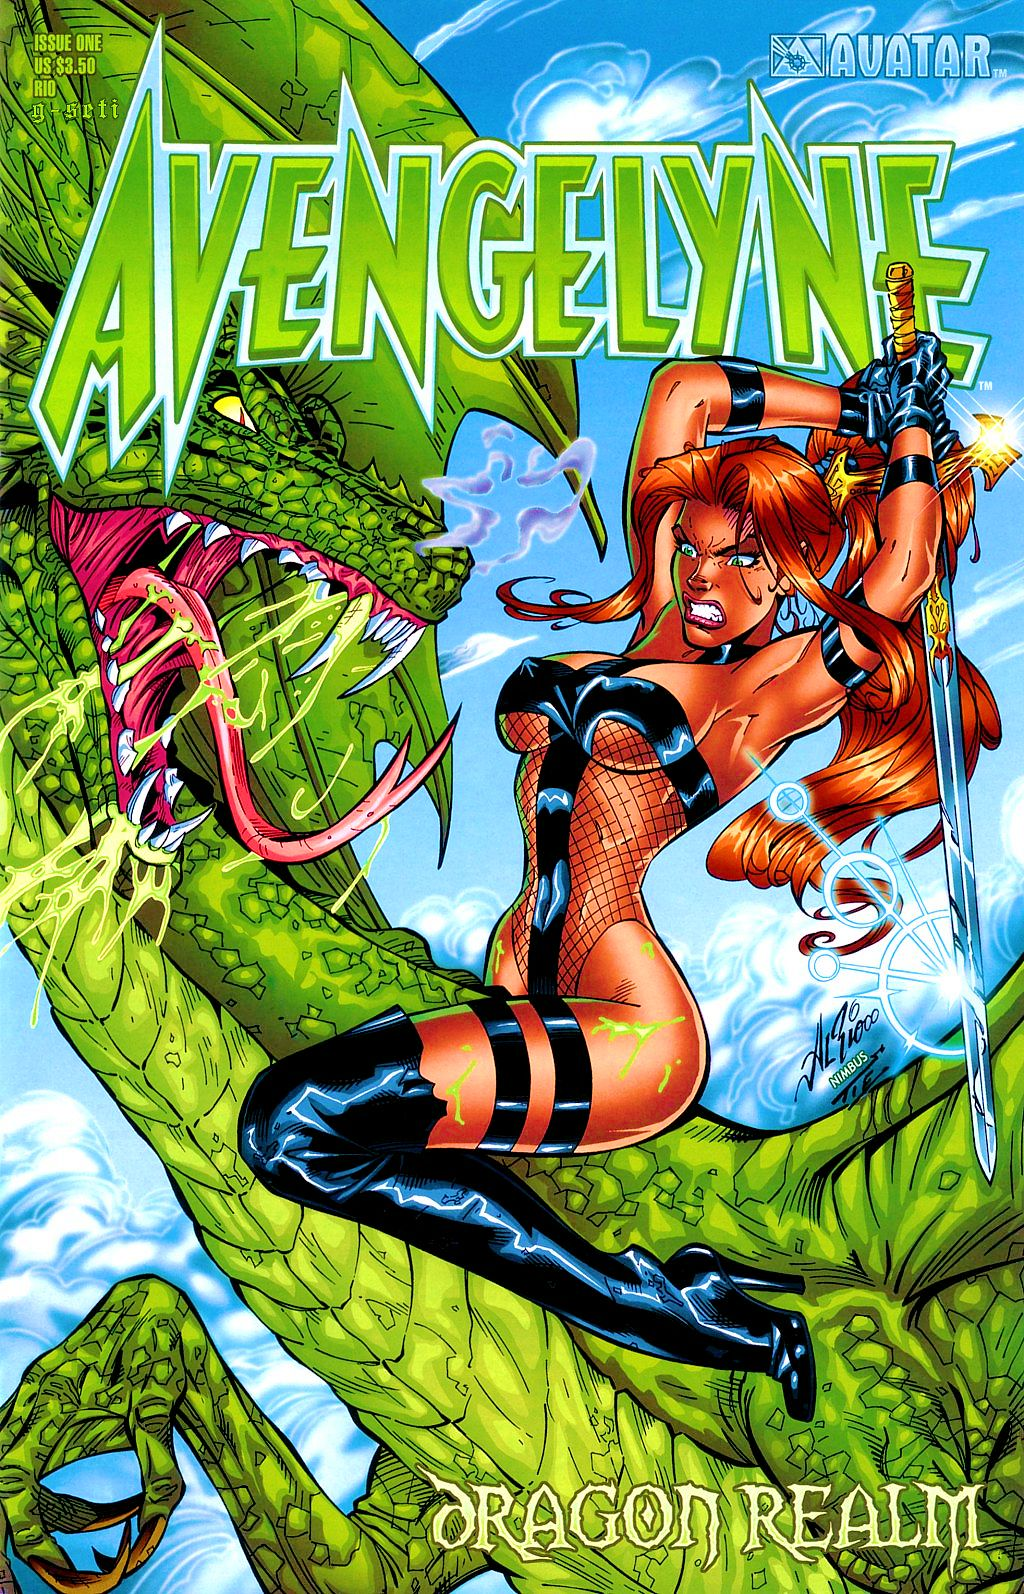 Read online Avengelyne: Dragon Realm comic -  Issue #1 - 1